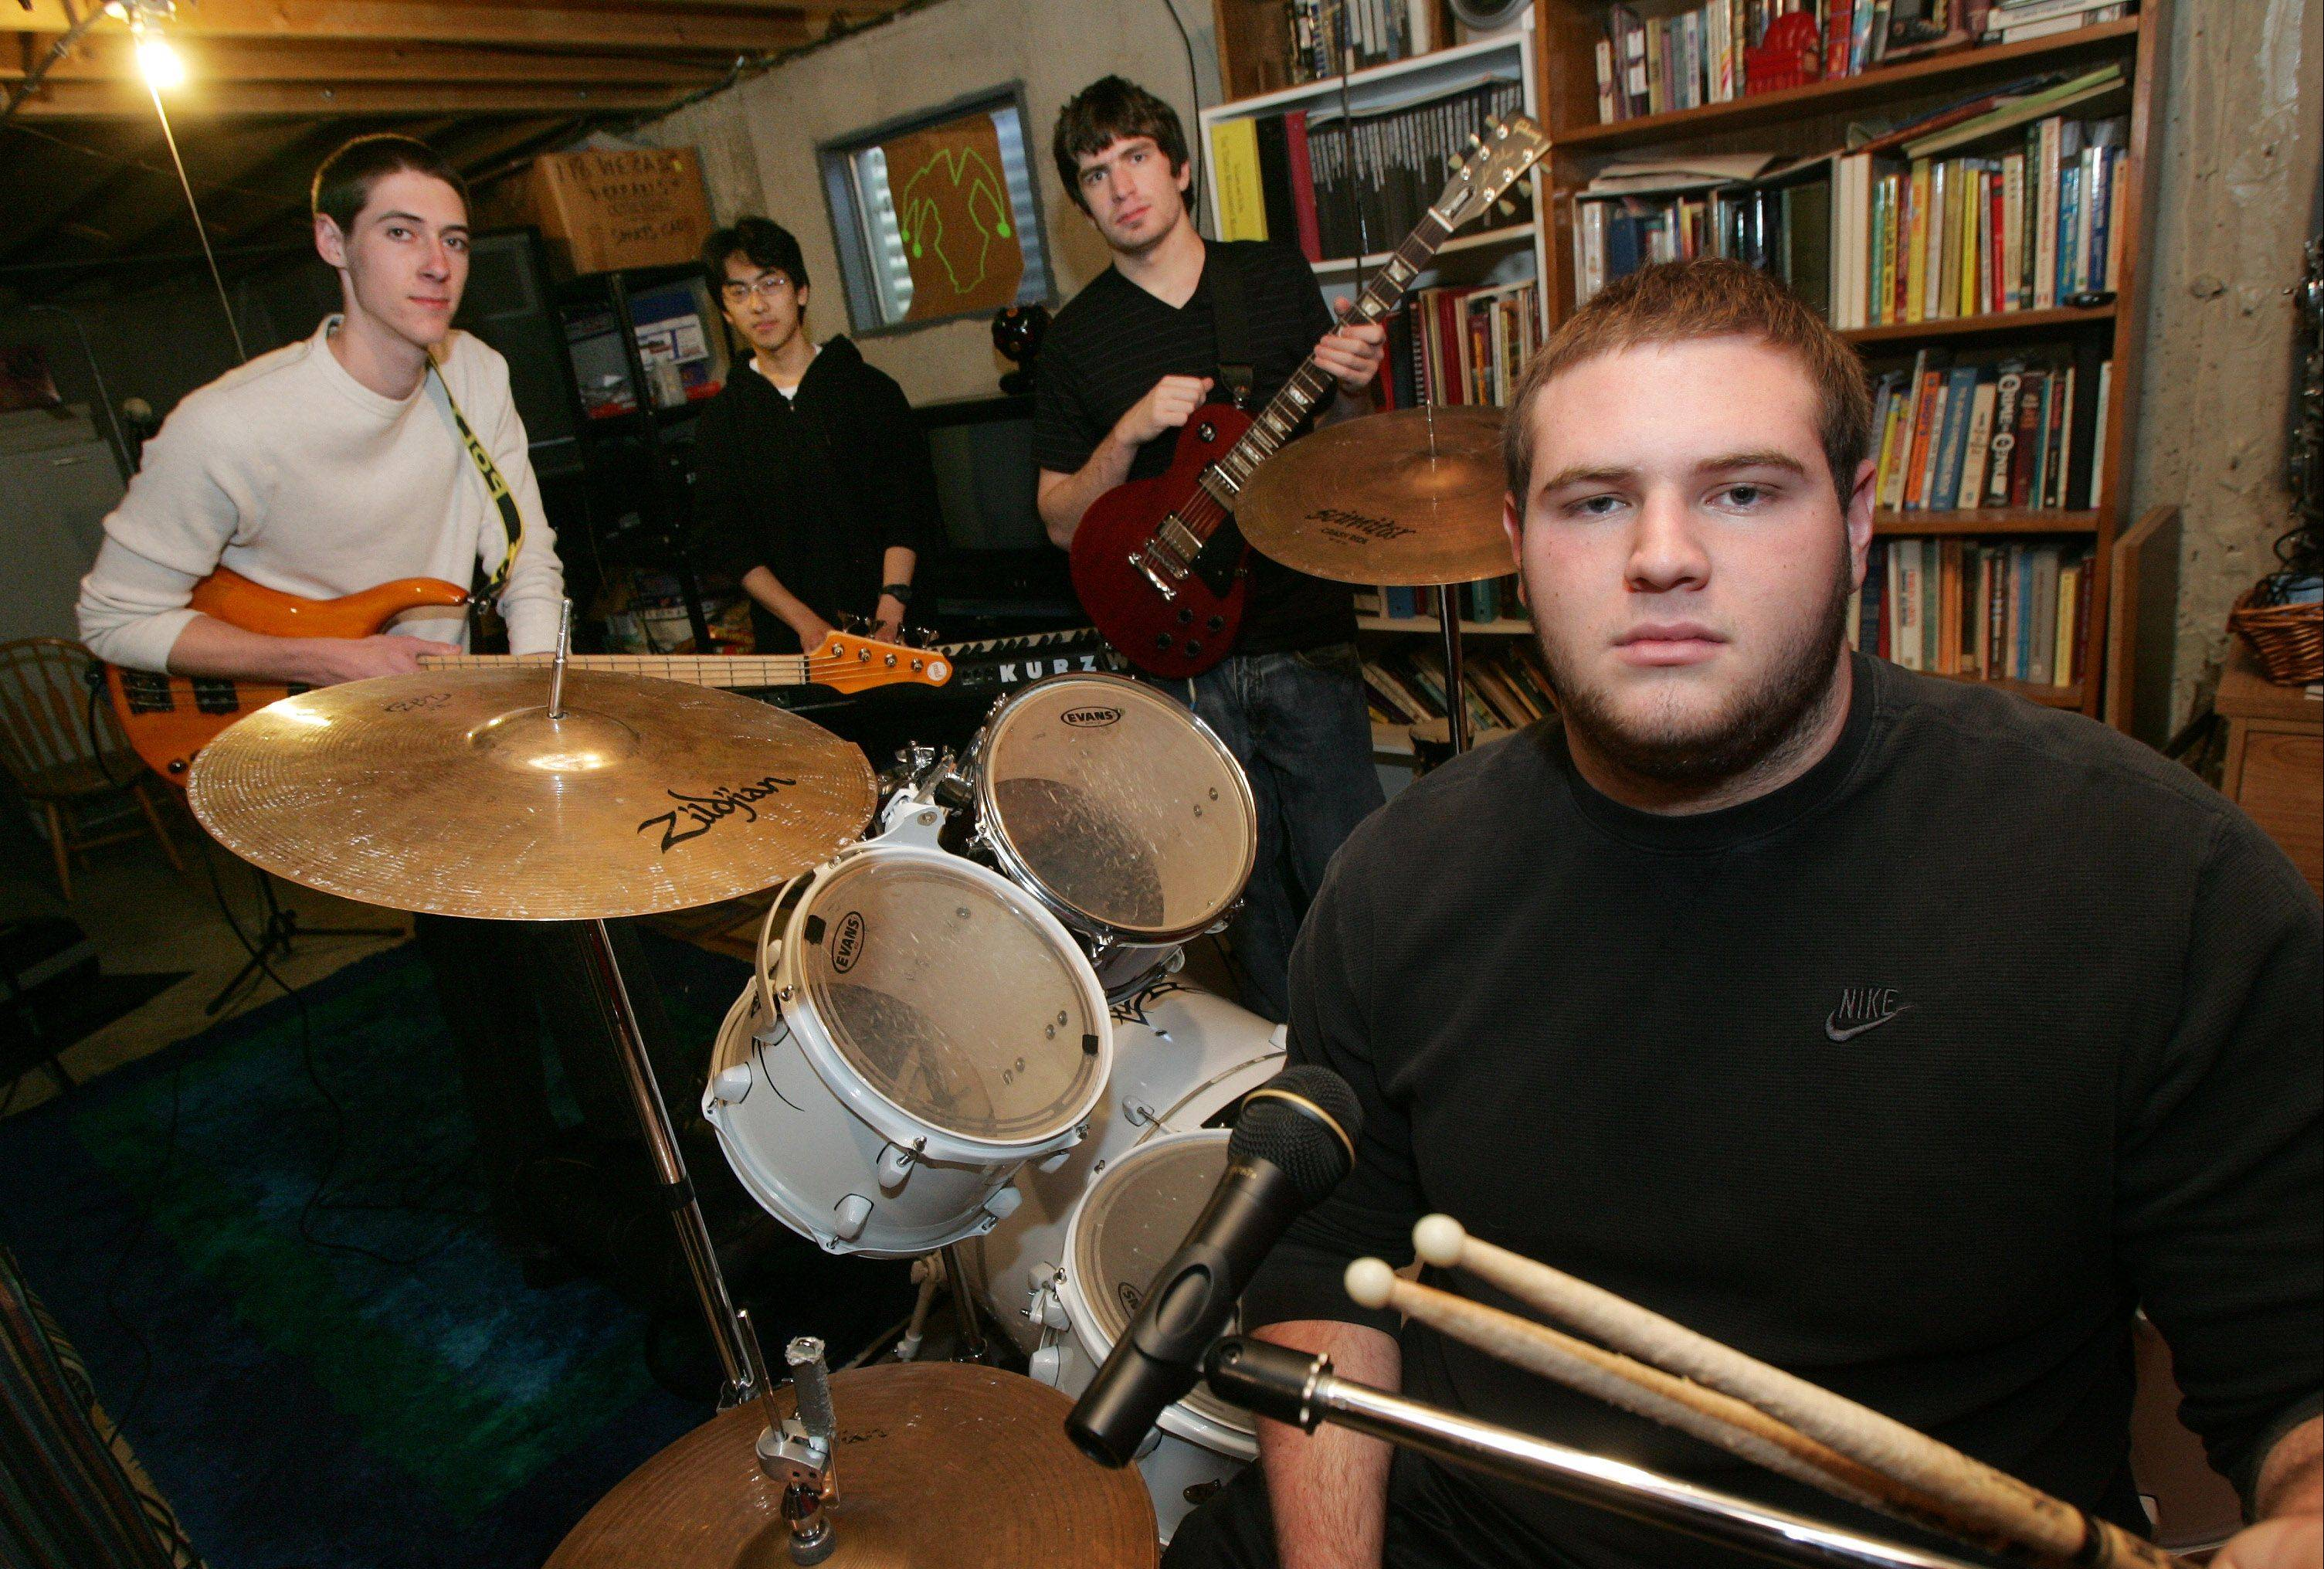 "Stevenson football player Brad Meyer plays drums with his band ""Foolish"" that includes Donald Bender on lead guitar, Kai Funahashi on keyboards and Jordan Gates on bass guitar. Here, they're practicing in Meyer's basement Thursday. The band was voted No. 1 at Stevenson and plans to release its album ""The Last Laugh"" on iTunes on May 4."